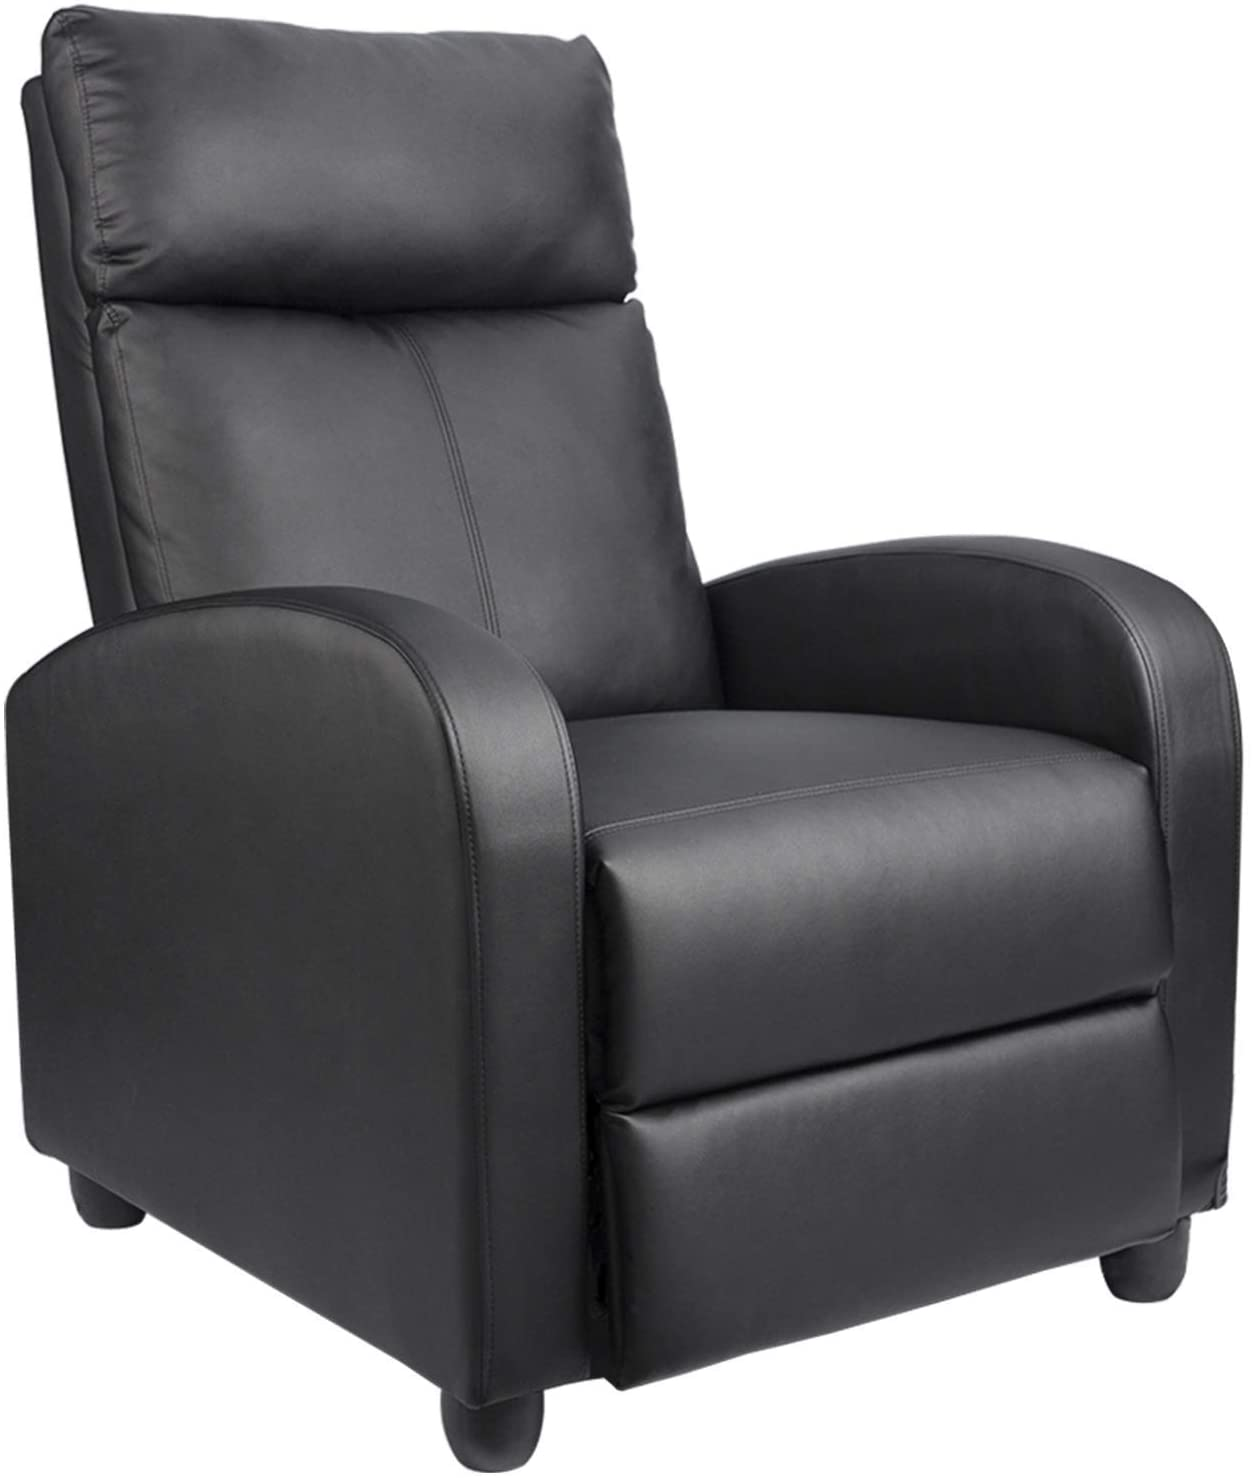 homall single recliner chair padded seat pu leather for living room